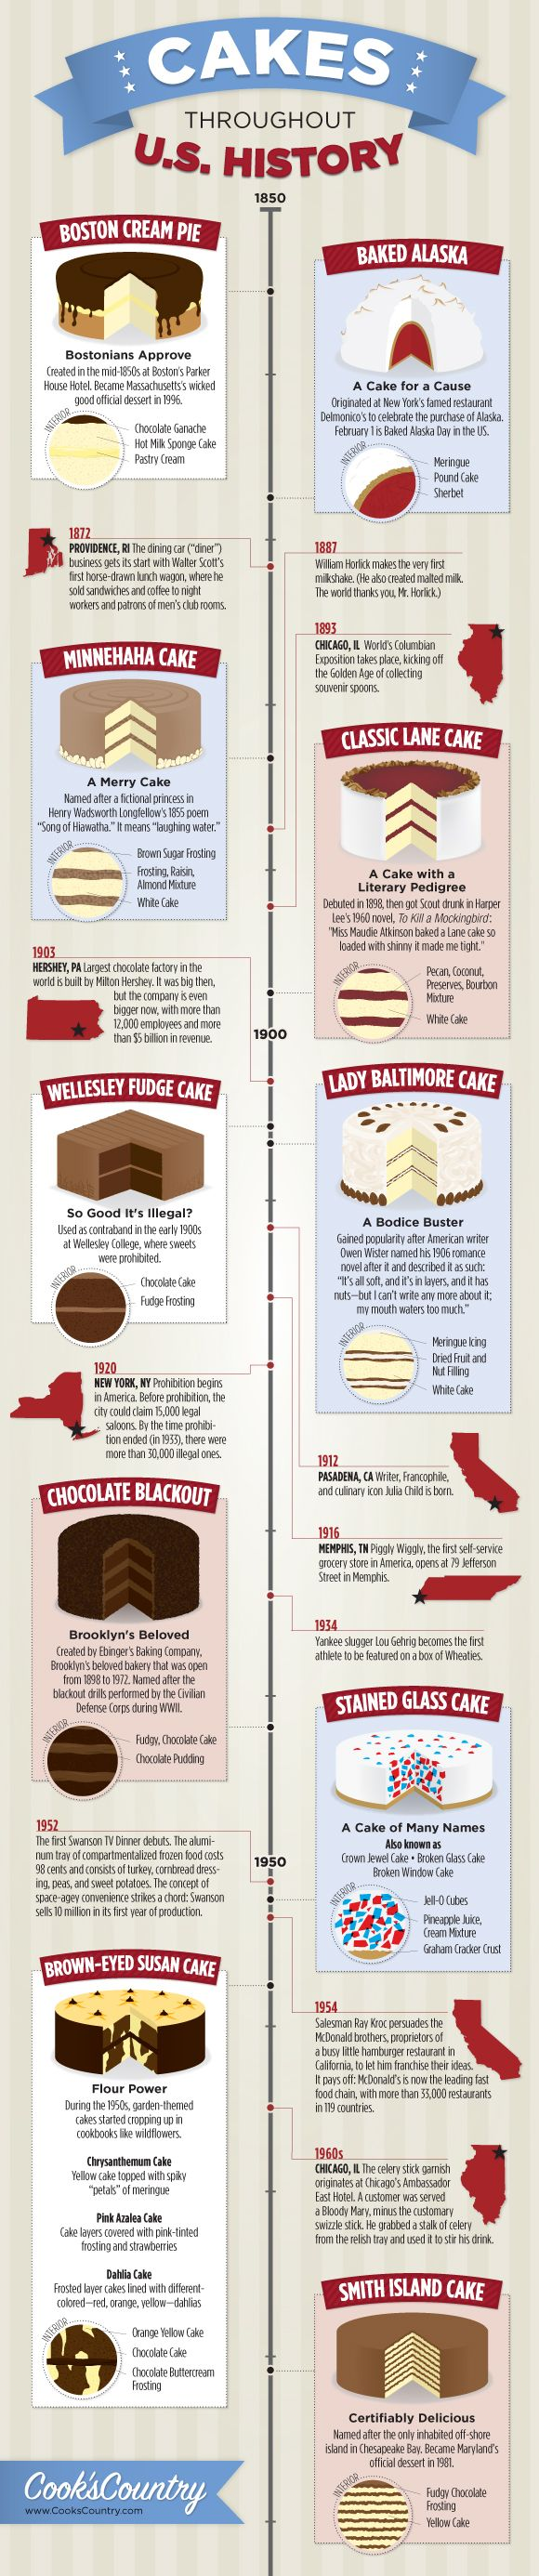 Cakes Throughout U.S. History [INFOGRAPHIC] A food timeline has never tasted so sweet, designed by Jay Layman